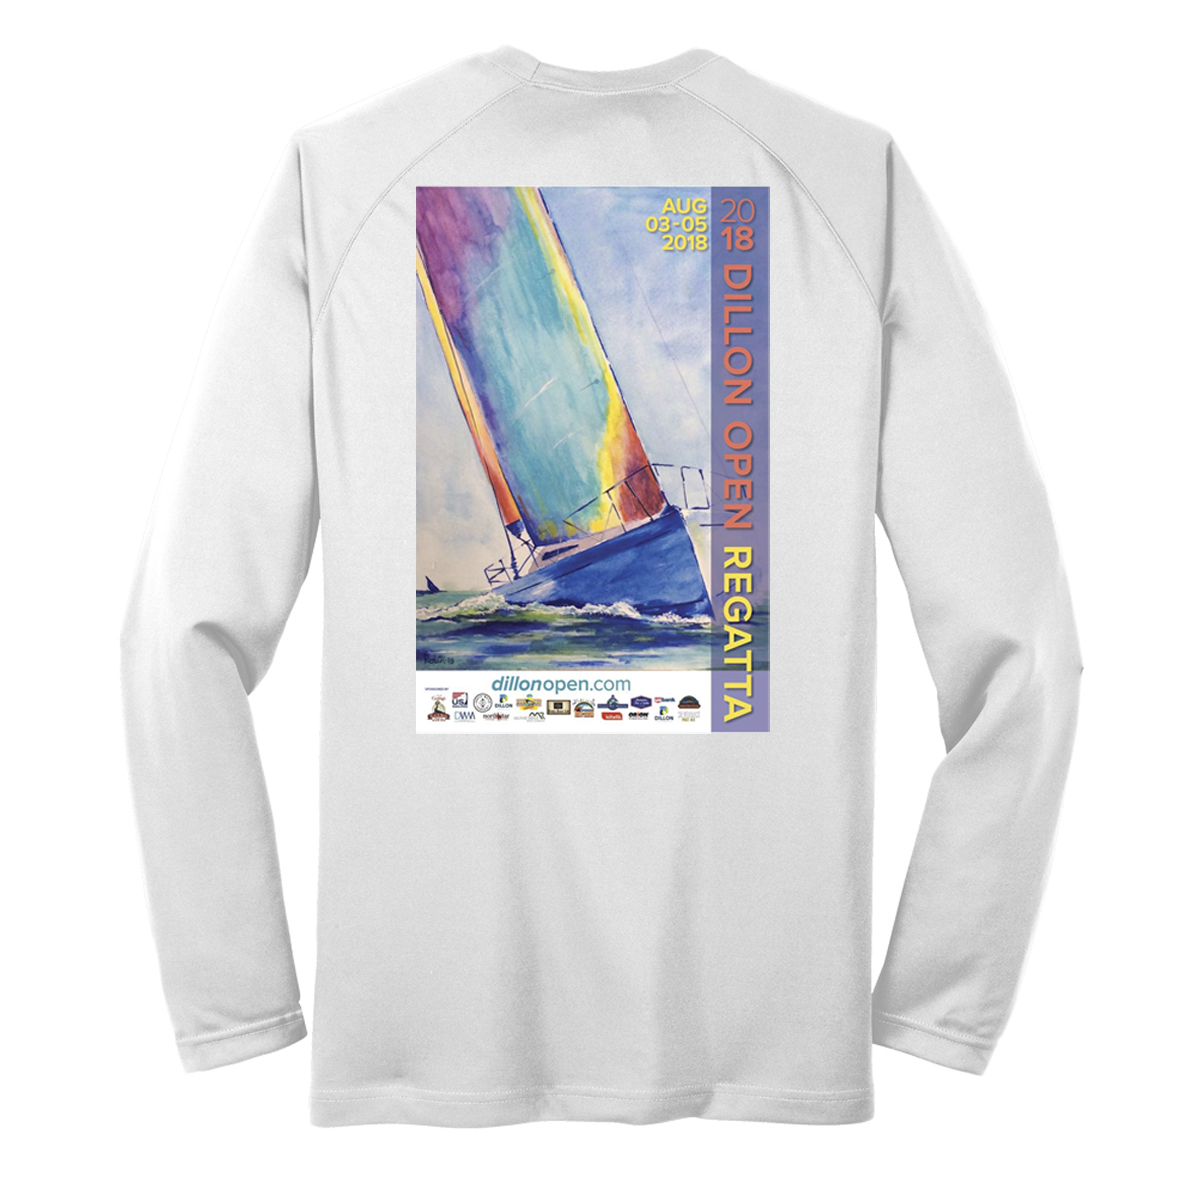 DILLON OPEN REGATTA 2018 - M'S L/S TECH TEE